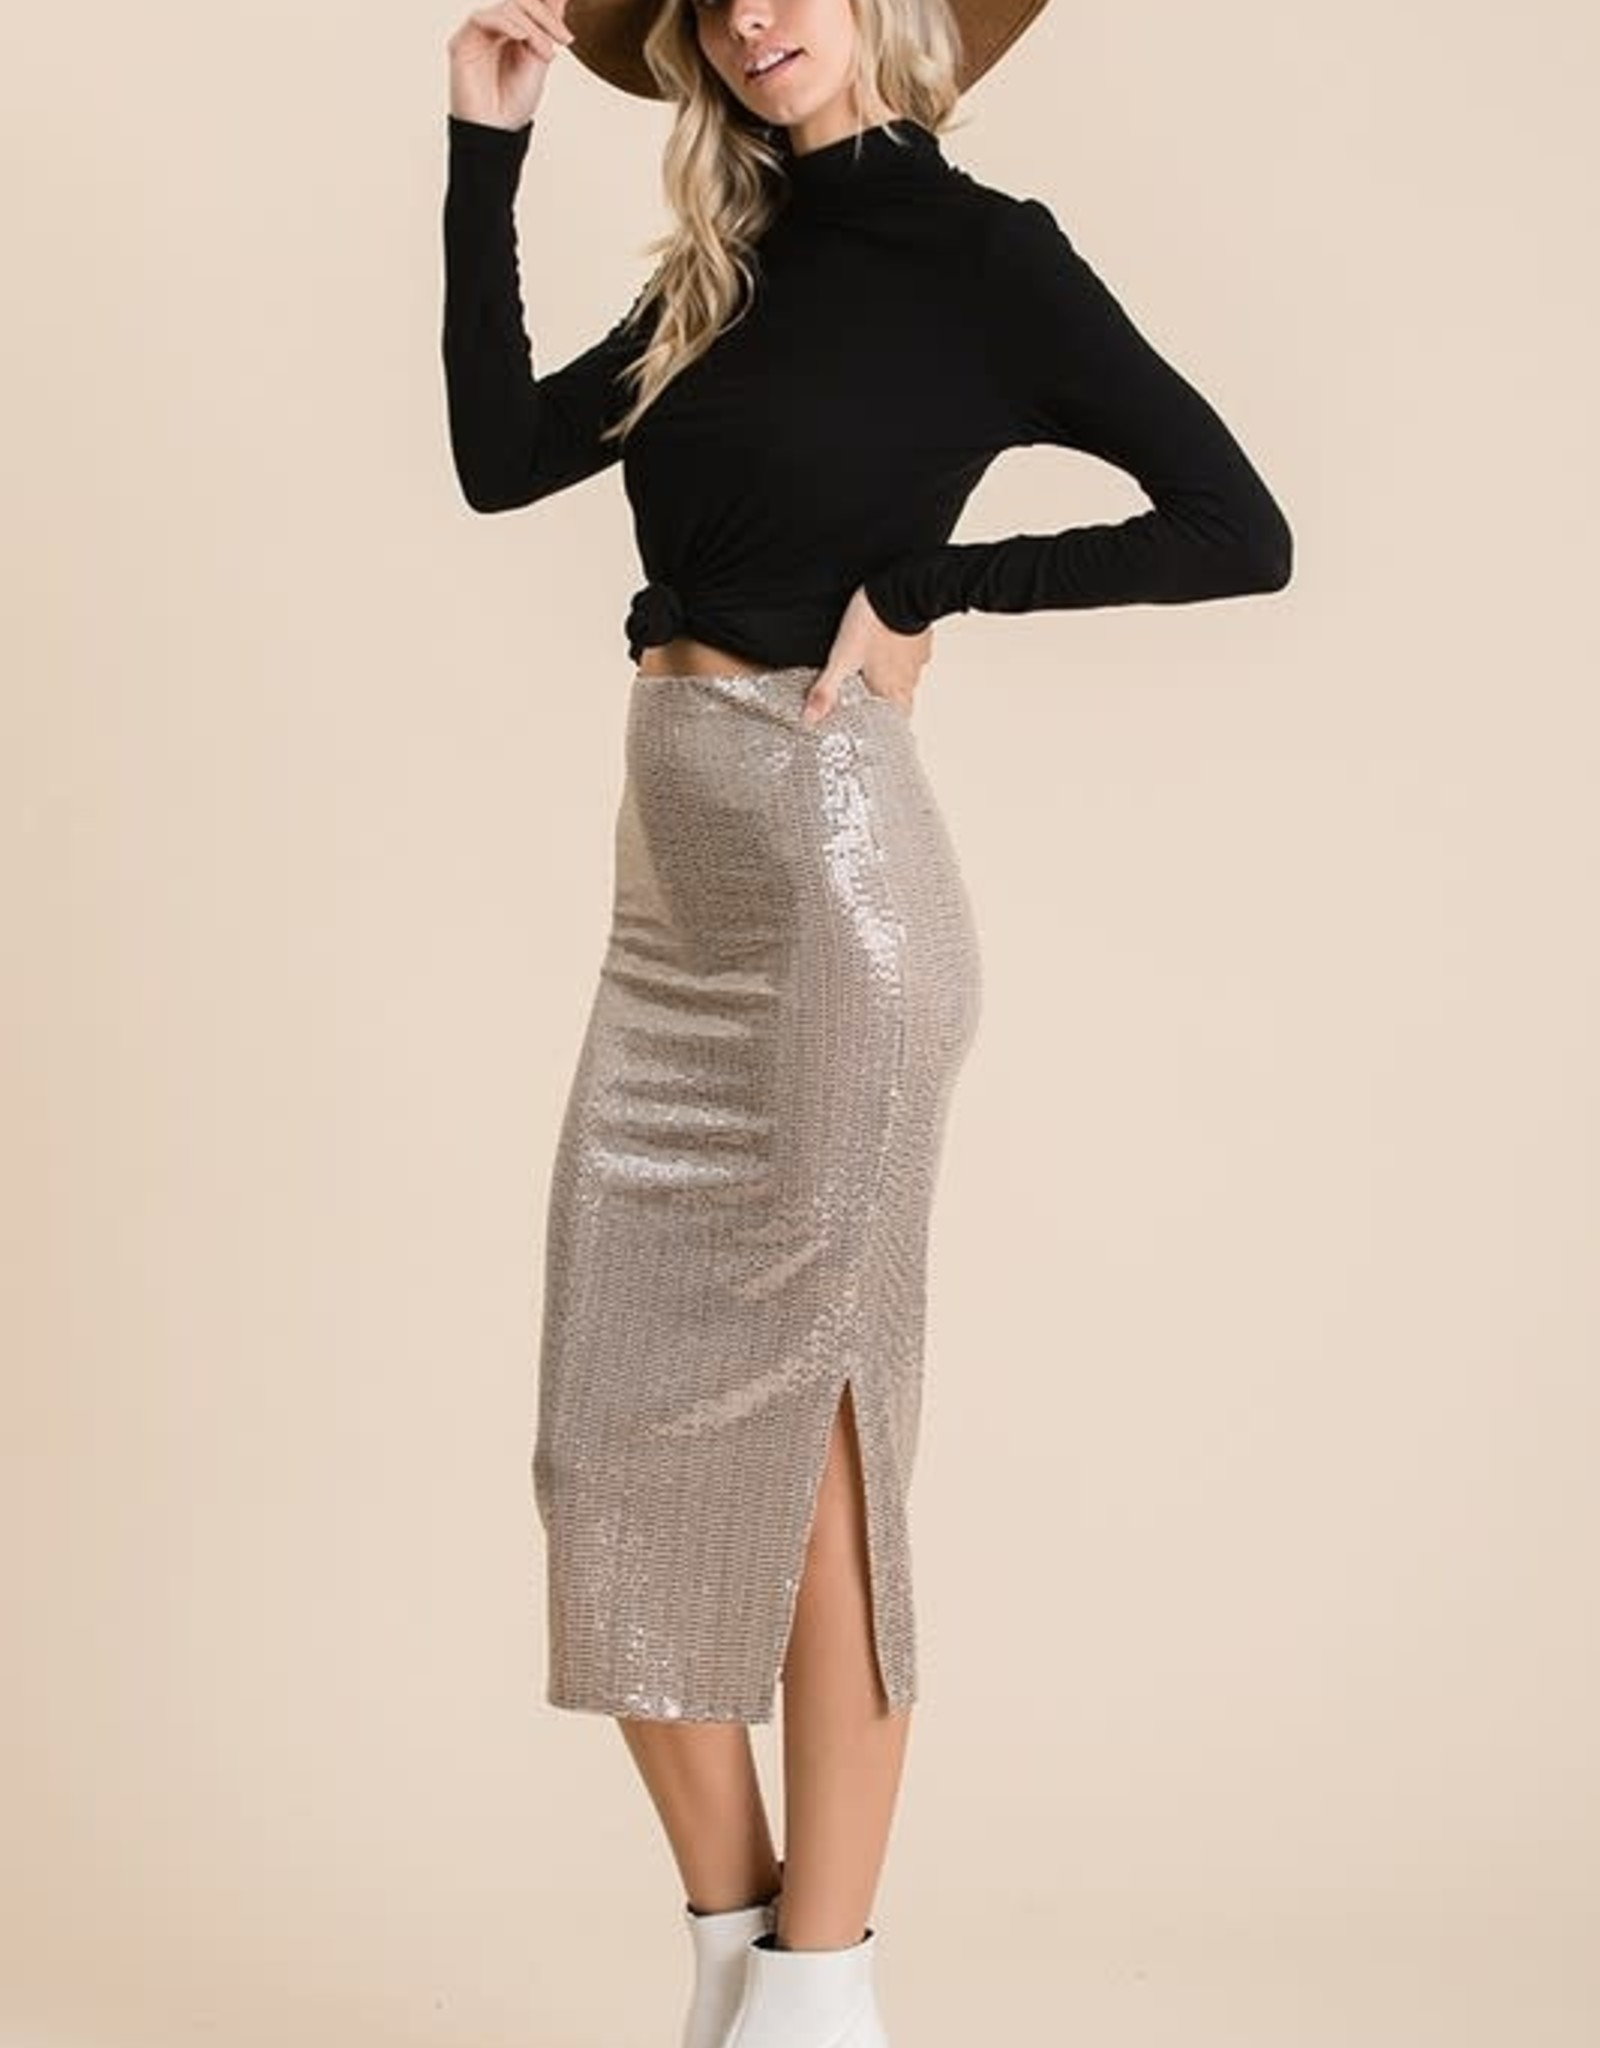 Trance sequins pencil skirts